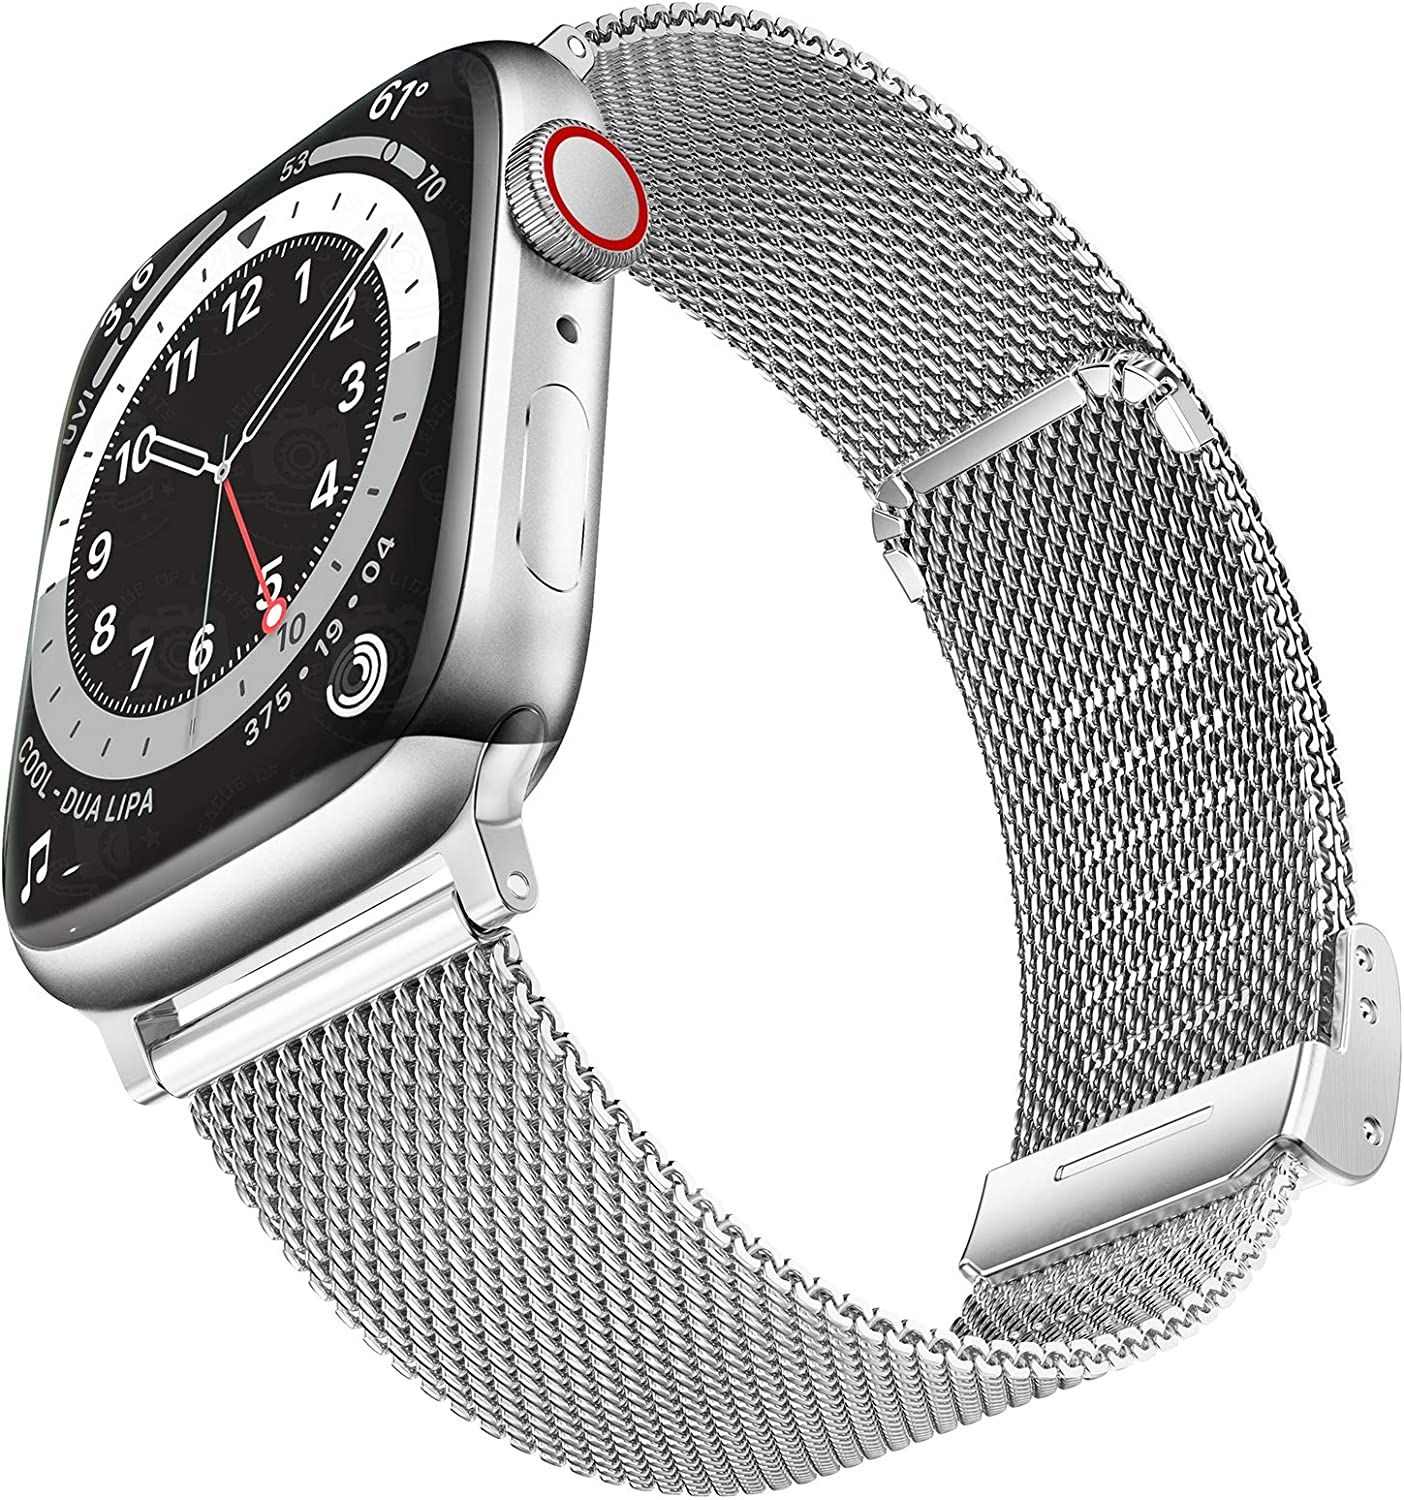 Geoumy Bands Compatible with Apple Watch Band 42mm 44mm, Stainless Steel Milanese Mesh Loop Replacement Men Women Strap for iWatch Series SE/6/5/4/3/2/1,Silver